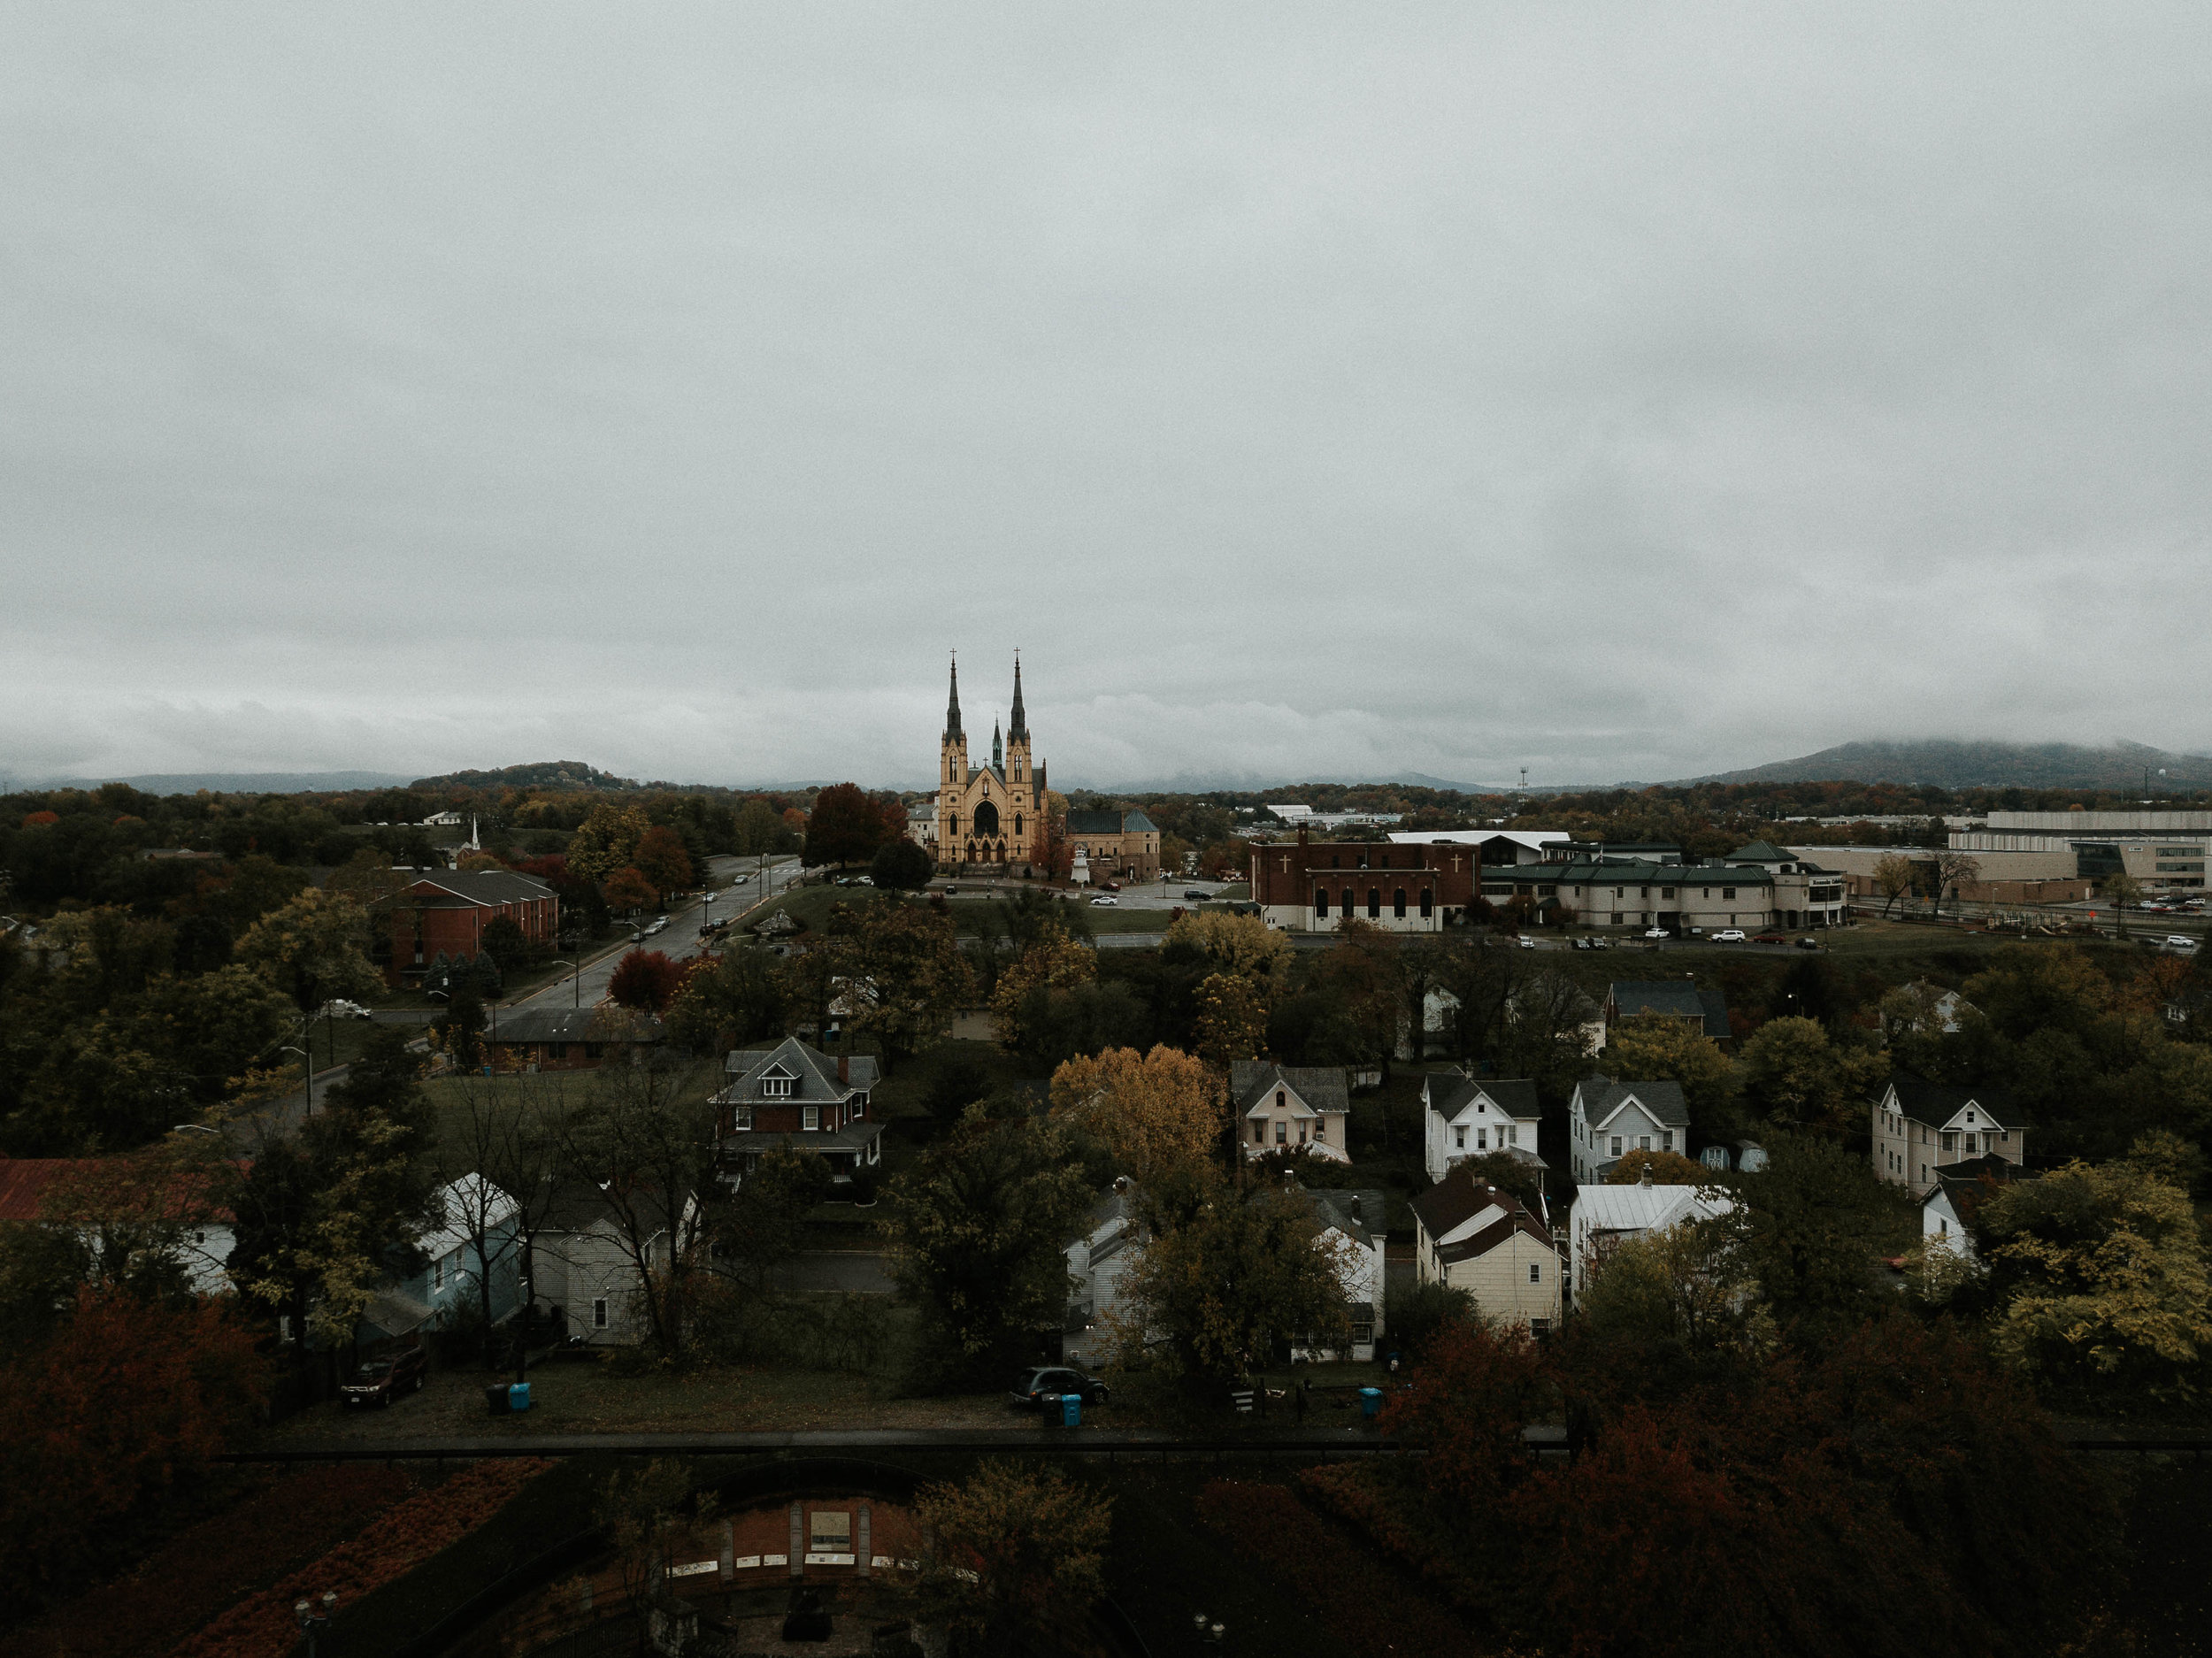 Drone Aerial Photo of St. Andrew's Catholic Church in Roanoke Virginia